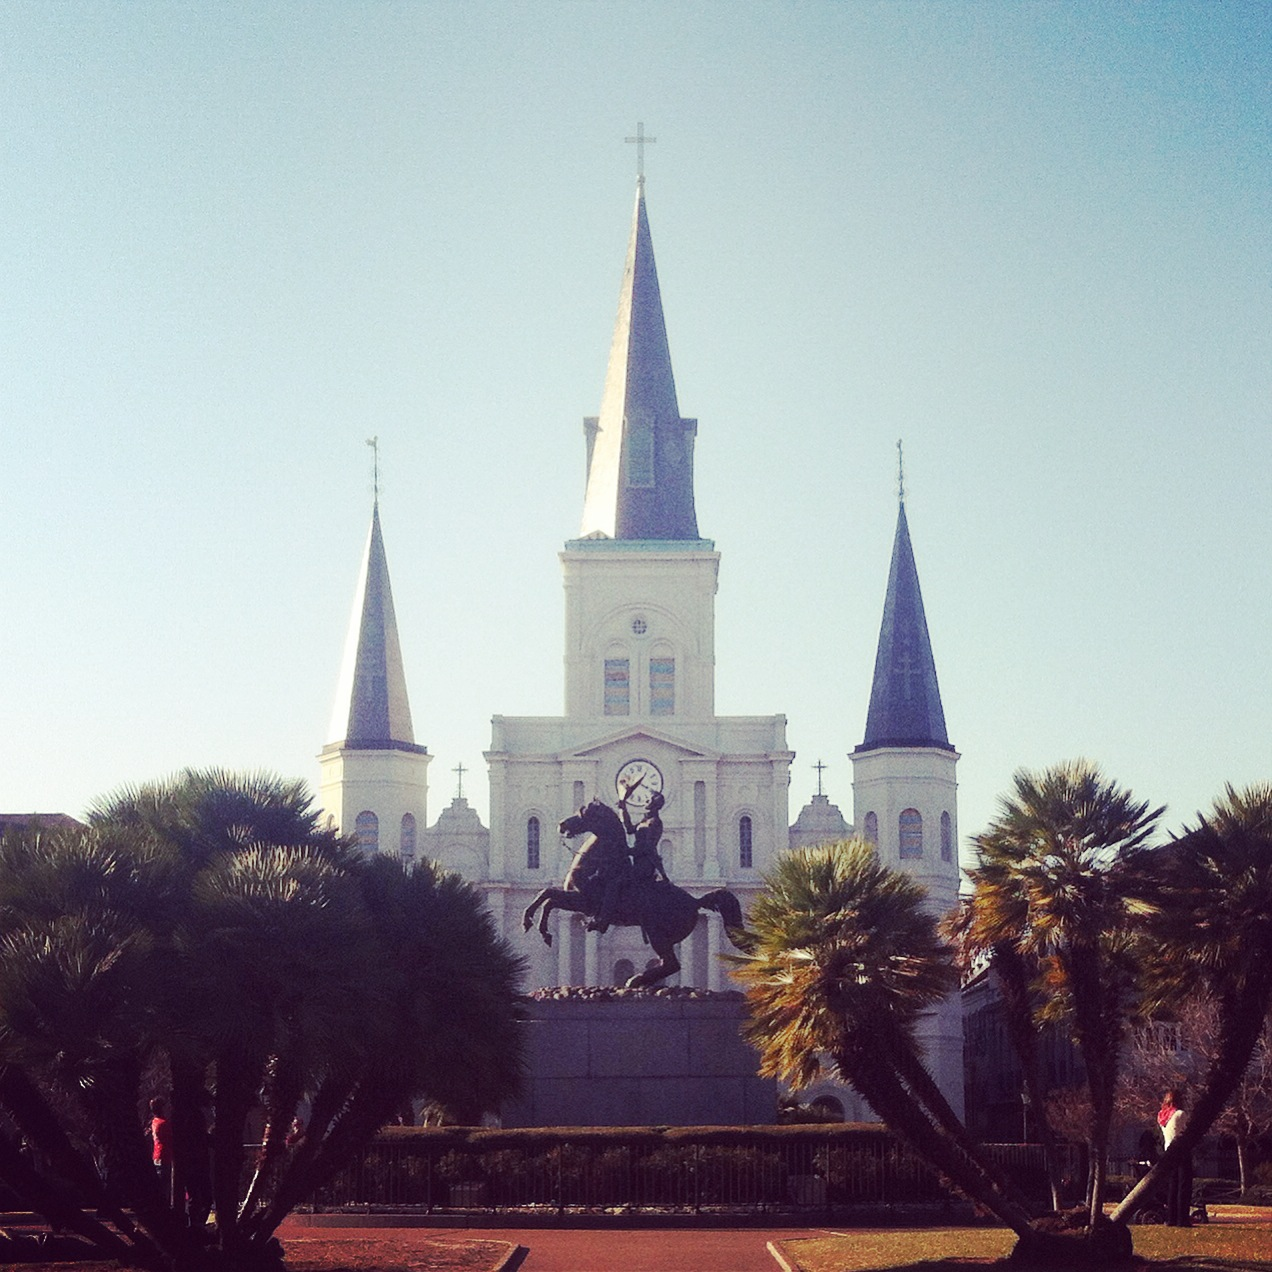 The St. Louis Cathedral at Jackson Square